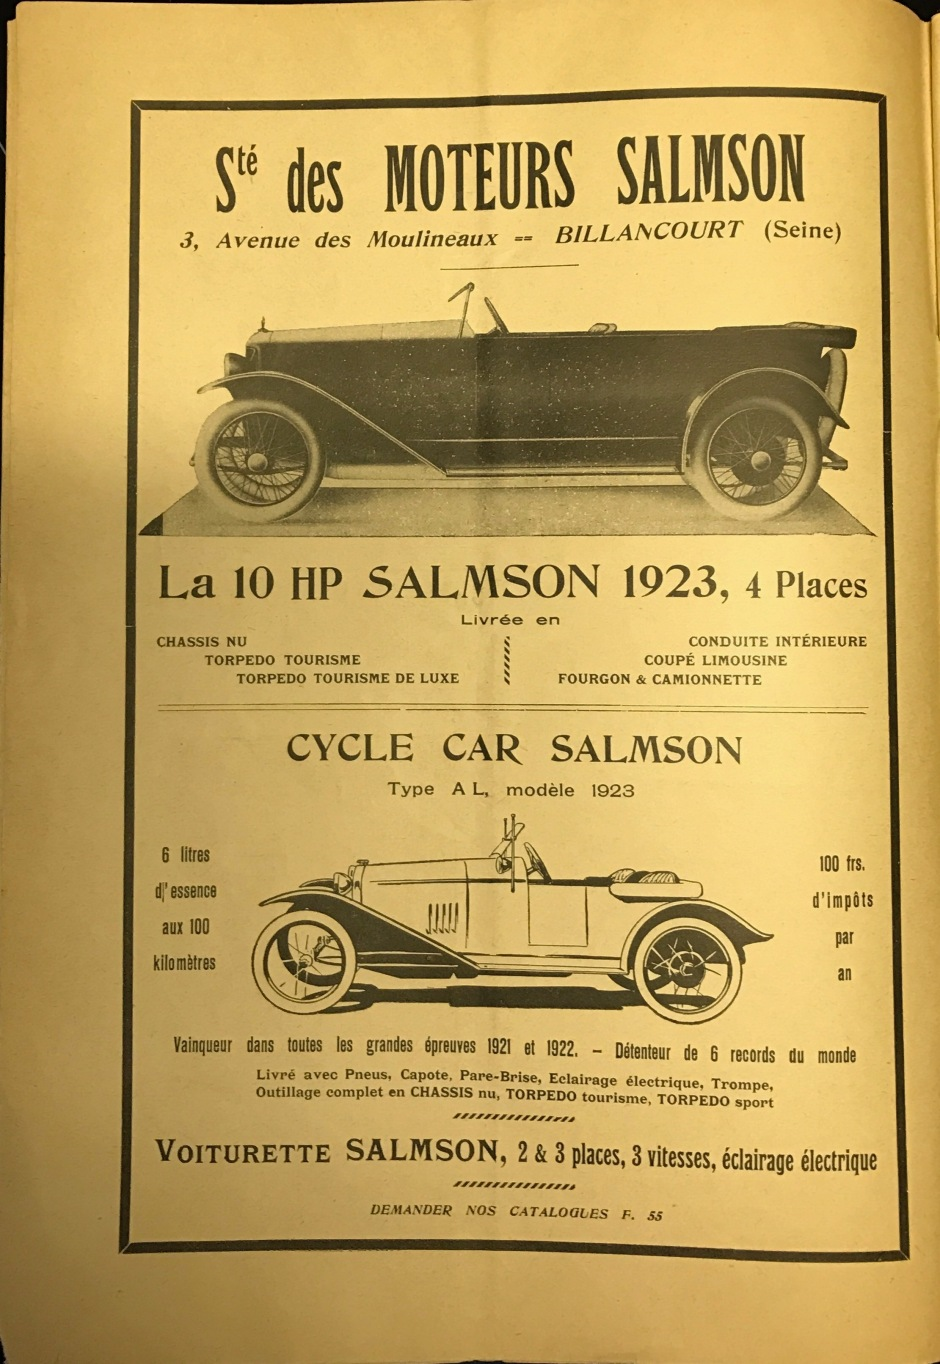 Le Moteuer Chauffeur Francais April 1923